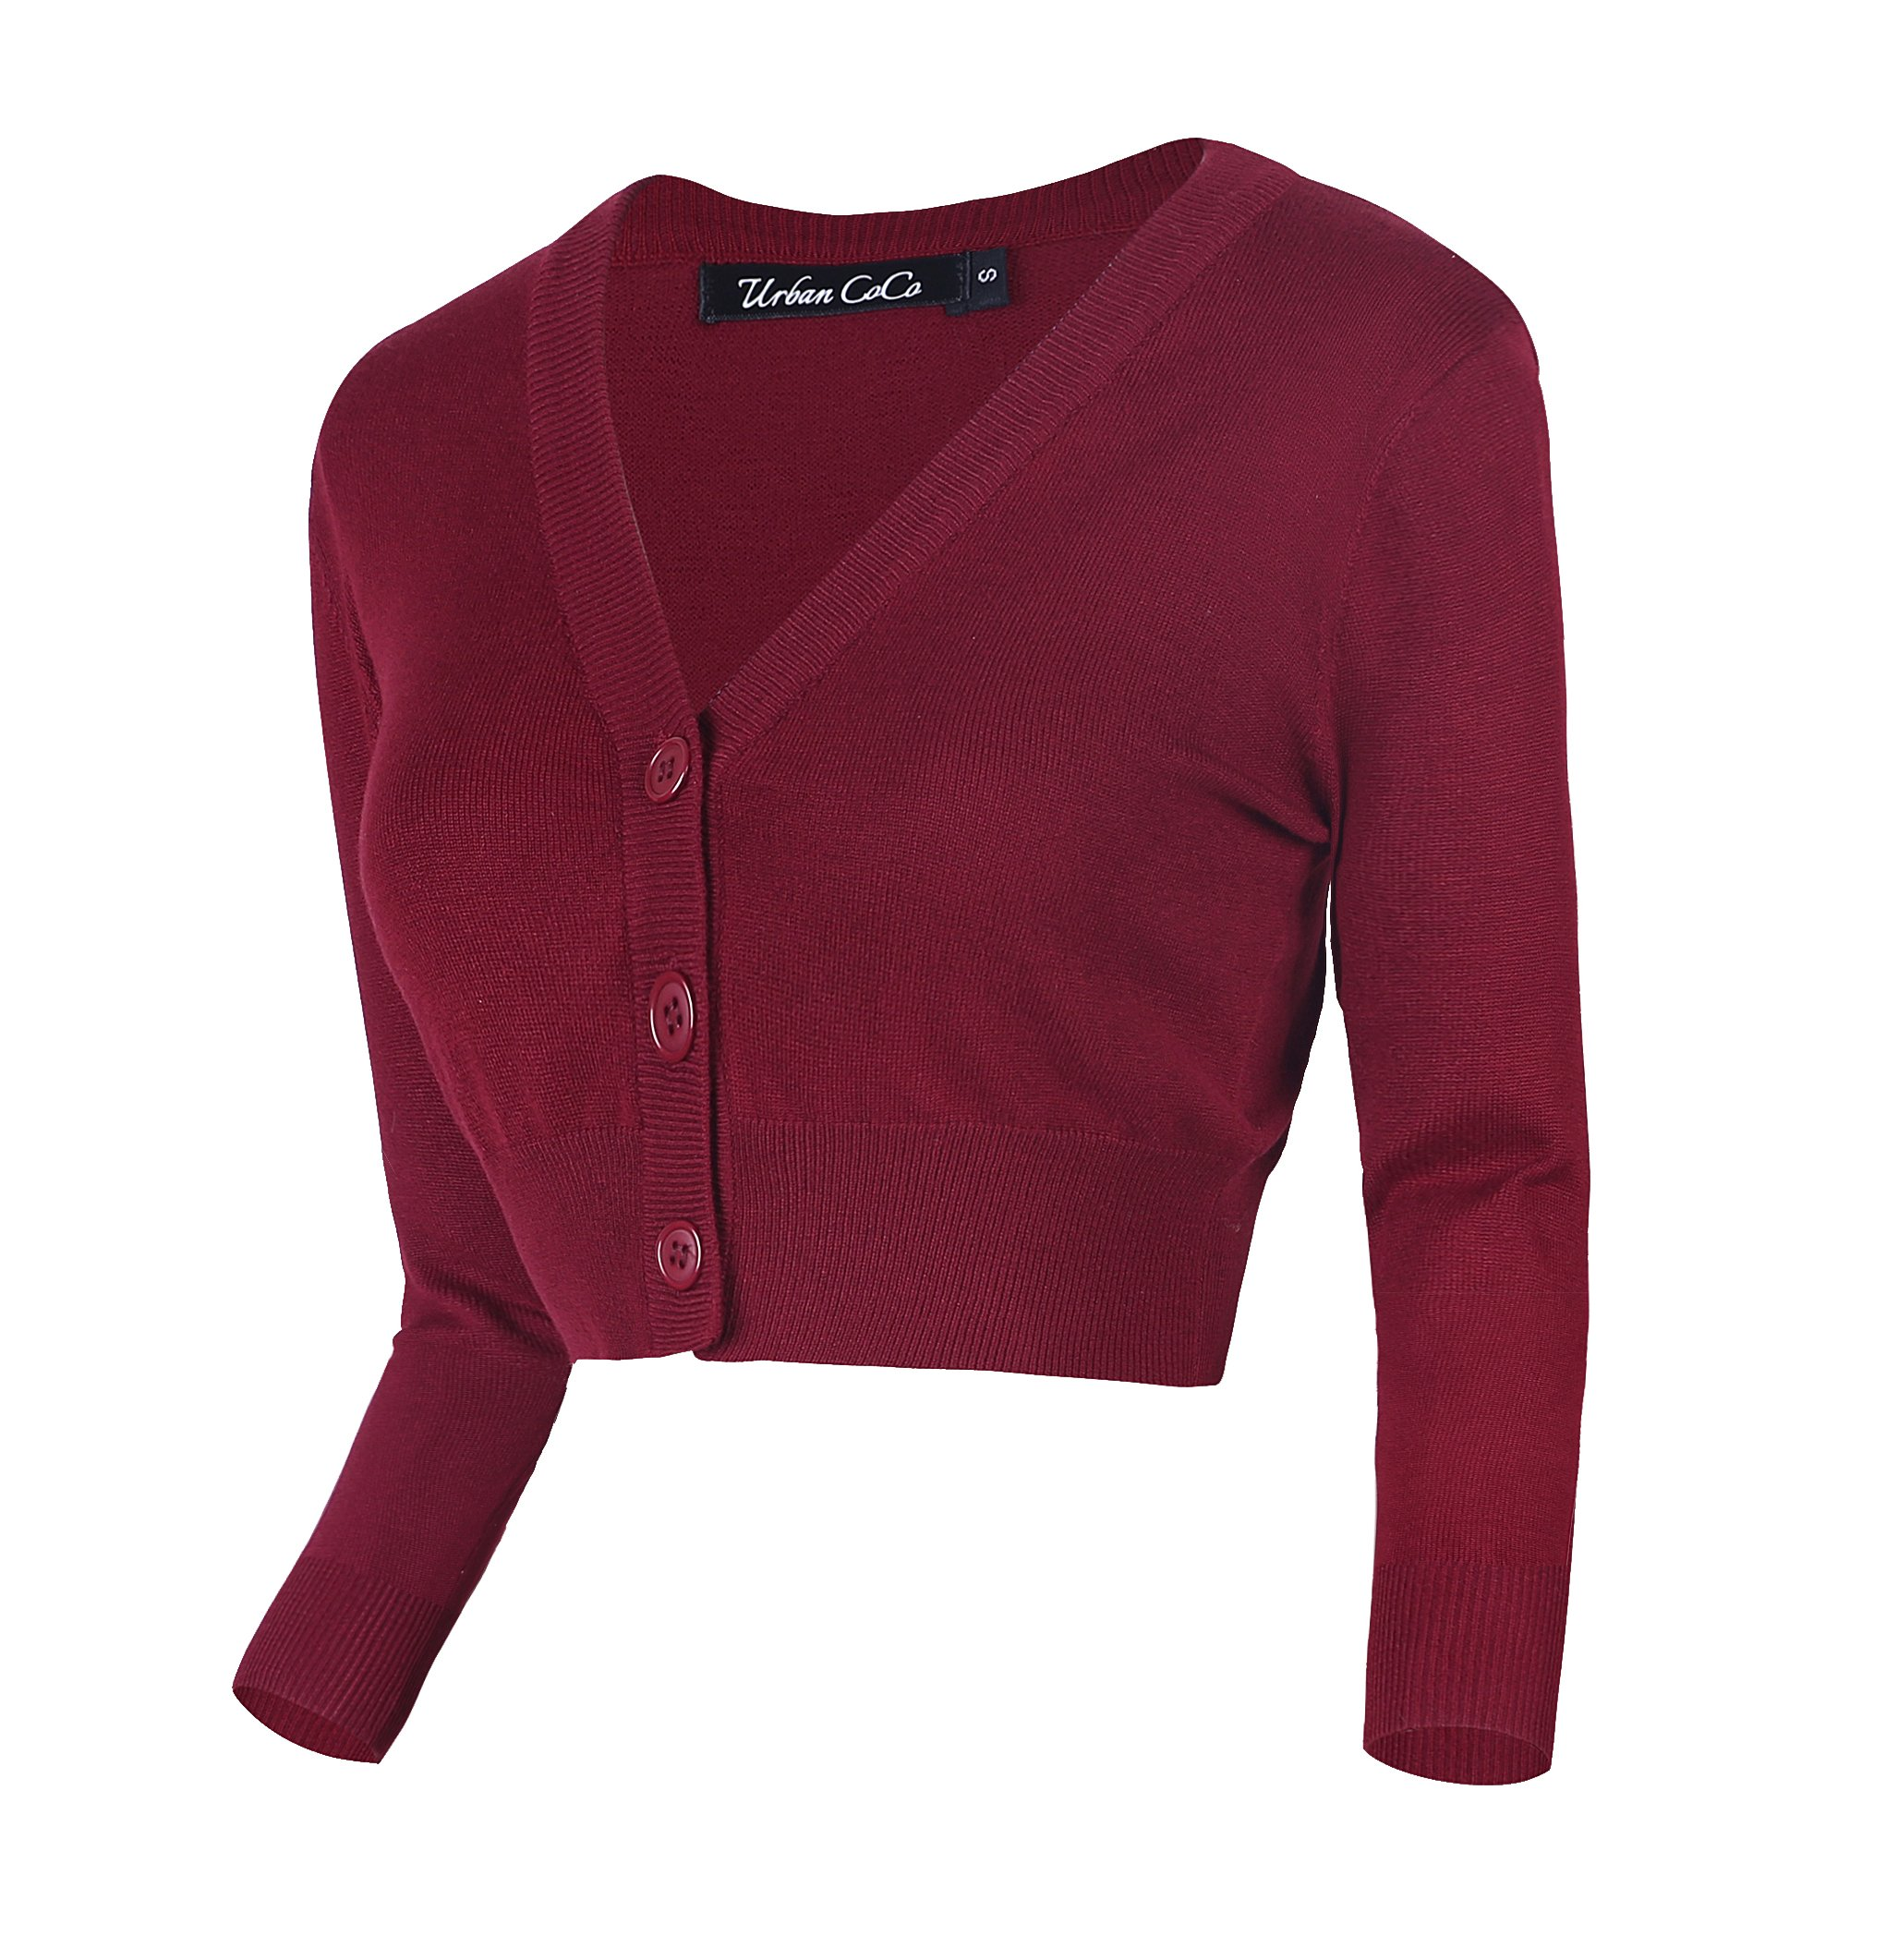 Urban CoCo Women's Cropped Cardigan V-Neck Button Down Knitted Sweater 3/4 Sleeve (M, Wine red)